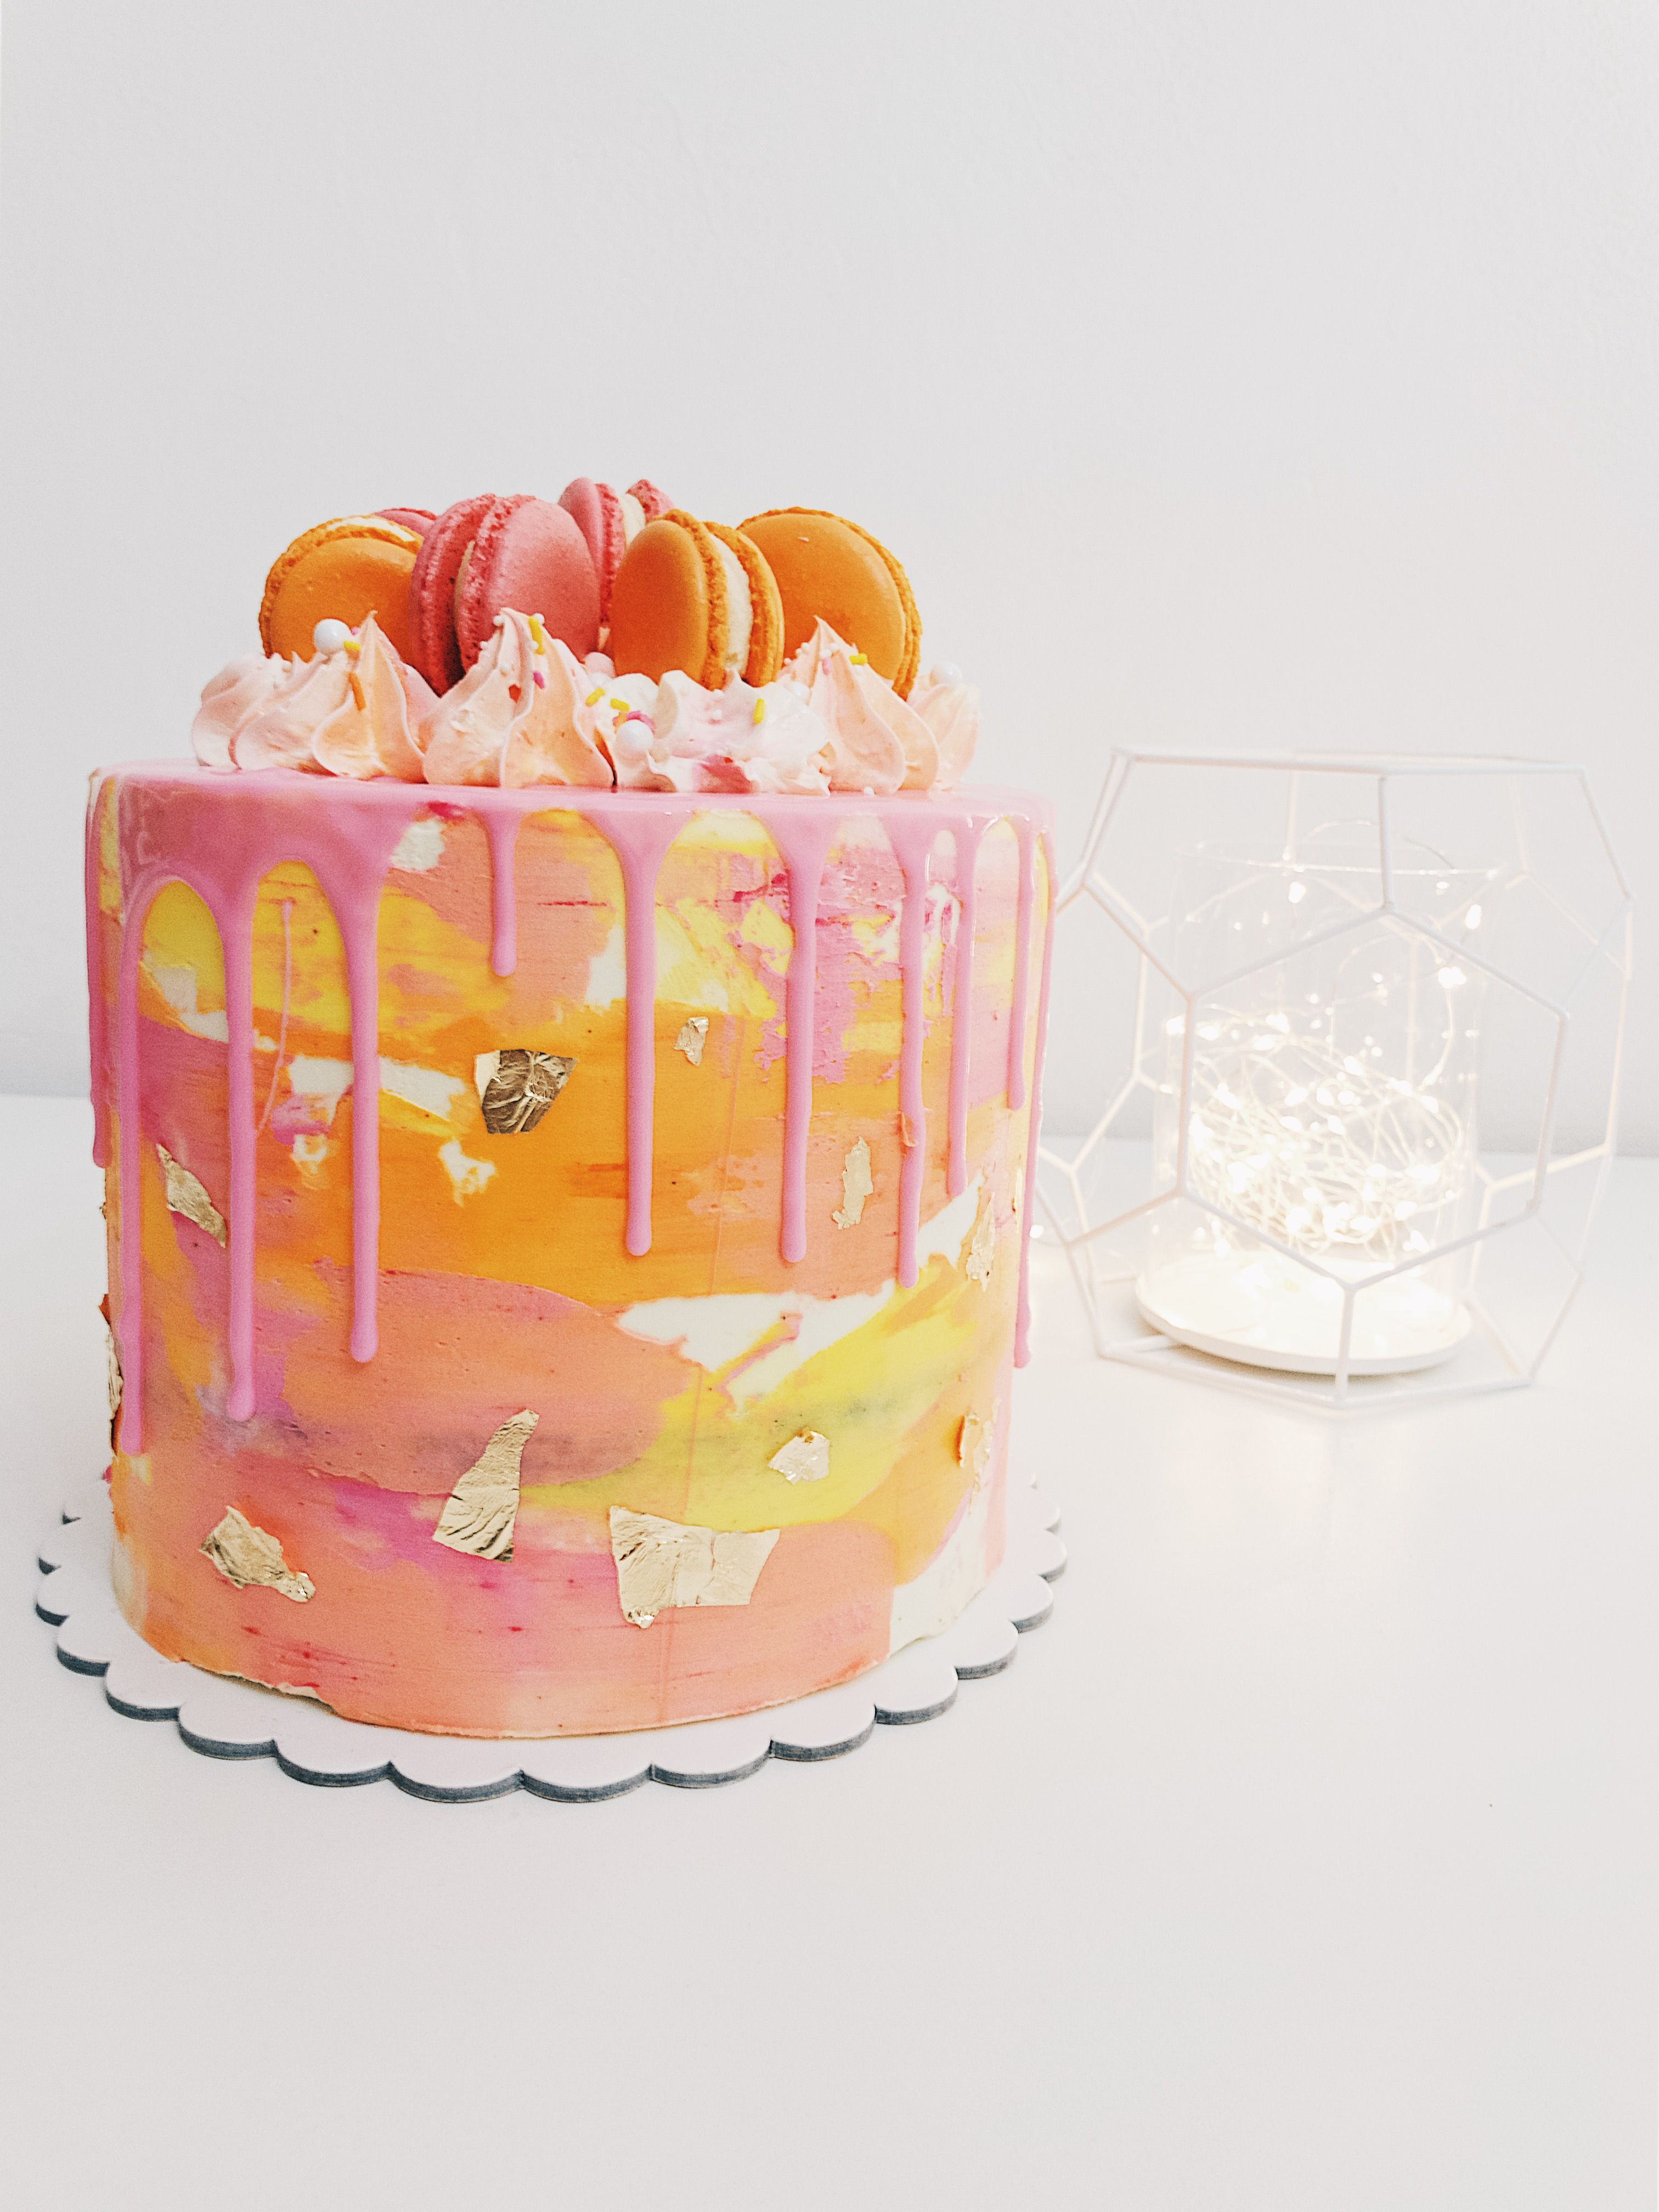 Drip Cake Color Rosa Naranja Y Amarillo Decorada Con